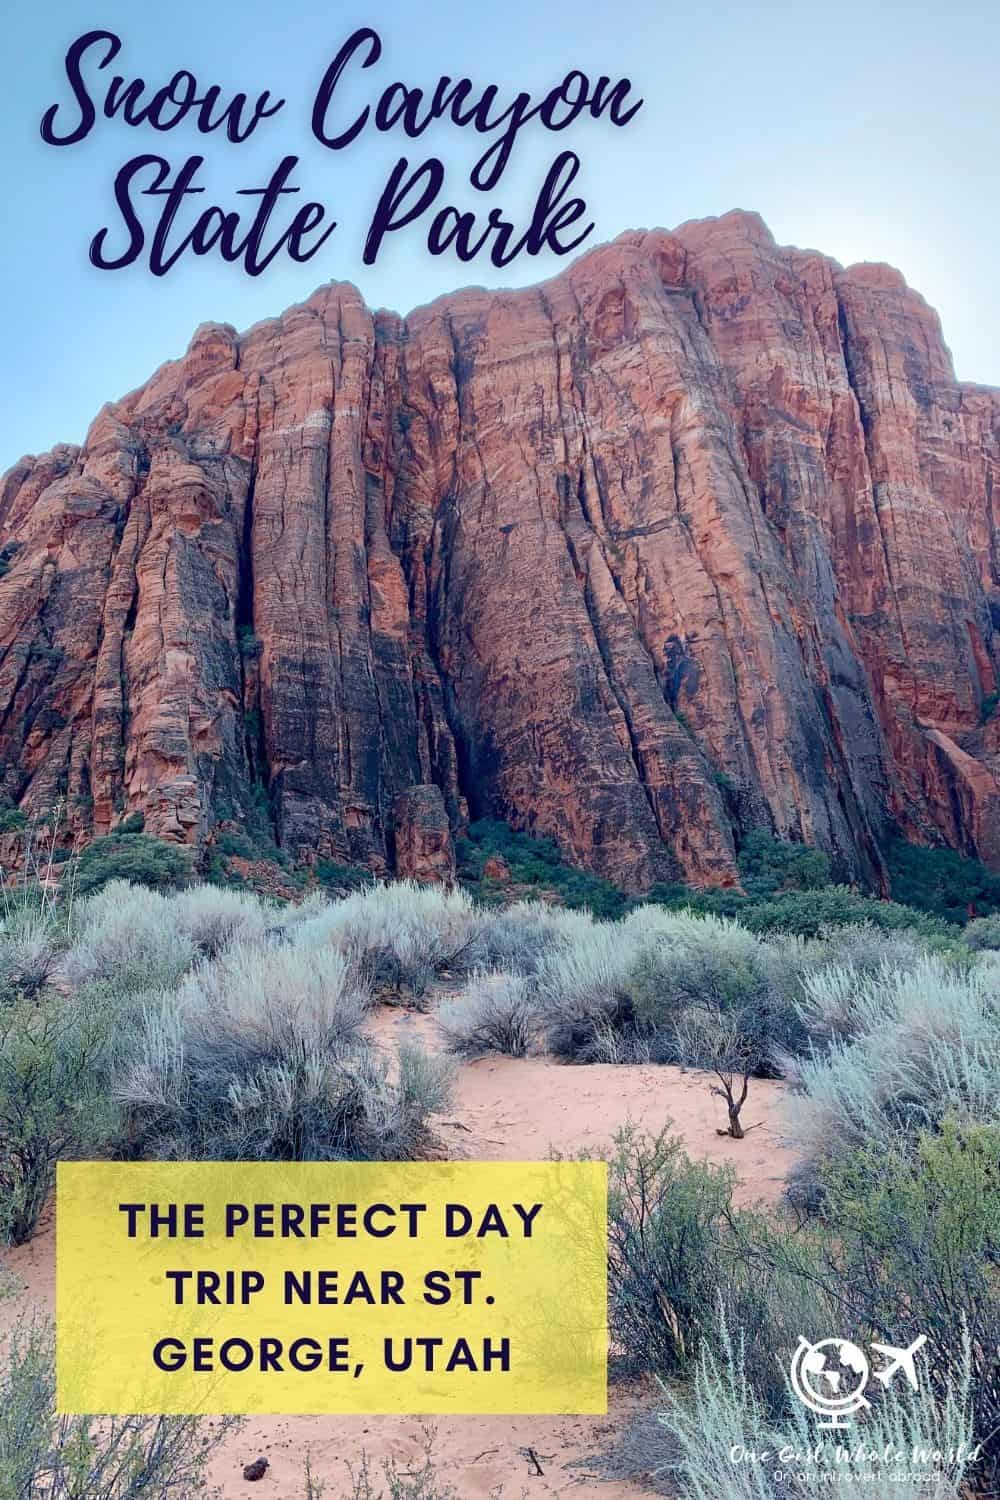 What to Do at Snow Canyon State Park, Near St. George, Utah | This state park is so amazing, it's crazy that it's not a national park! Only 20 minutes from St. George, there are tons of Snow Canyon hikes, beautiful landscapes, vegetation, and more. Good hiking for small children or people who aren't as fit. Utah hiking options, what to do near St. George. #utah #snowcanyon #statepark